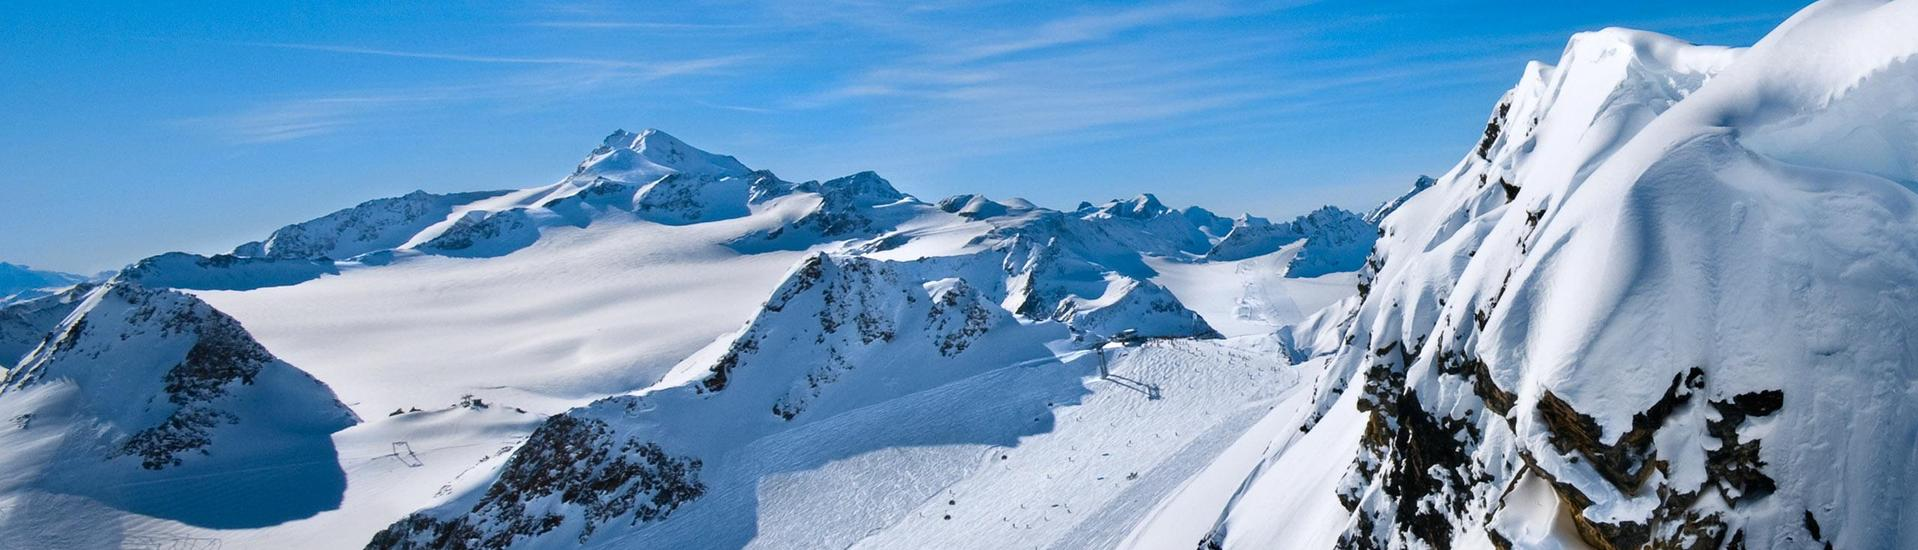 A view of a snowy mountain top in the ski resort of Flachau, where ski schools gather to start their ski lessons.